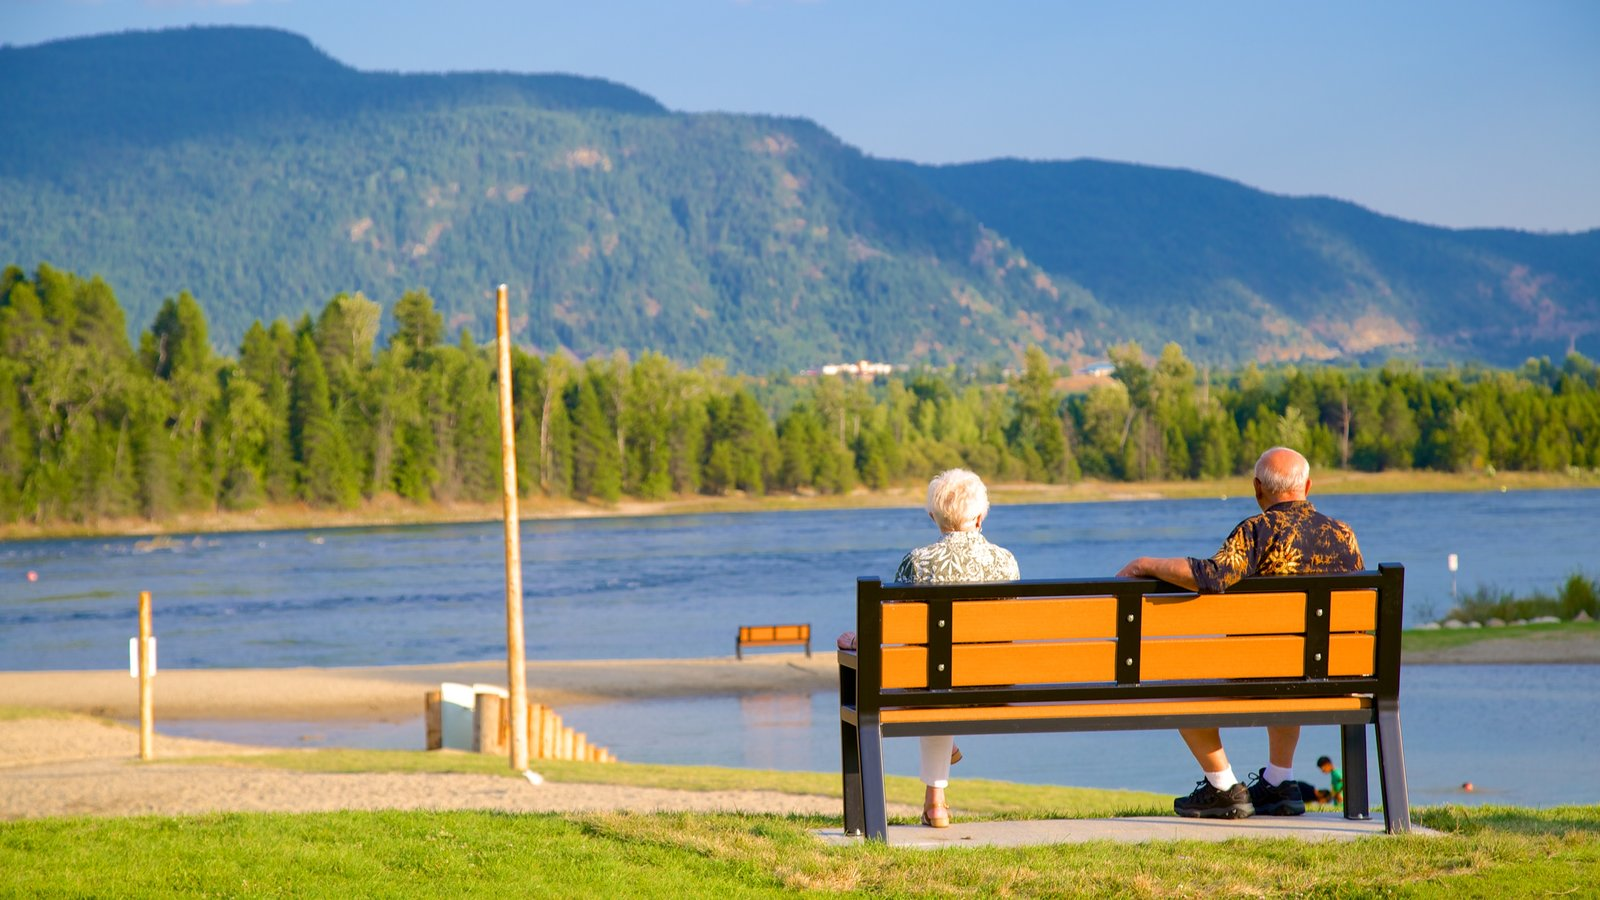 Castlegar featuring a river or creek as well as a couple